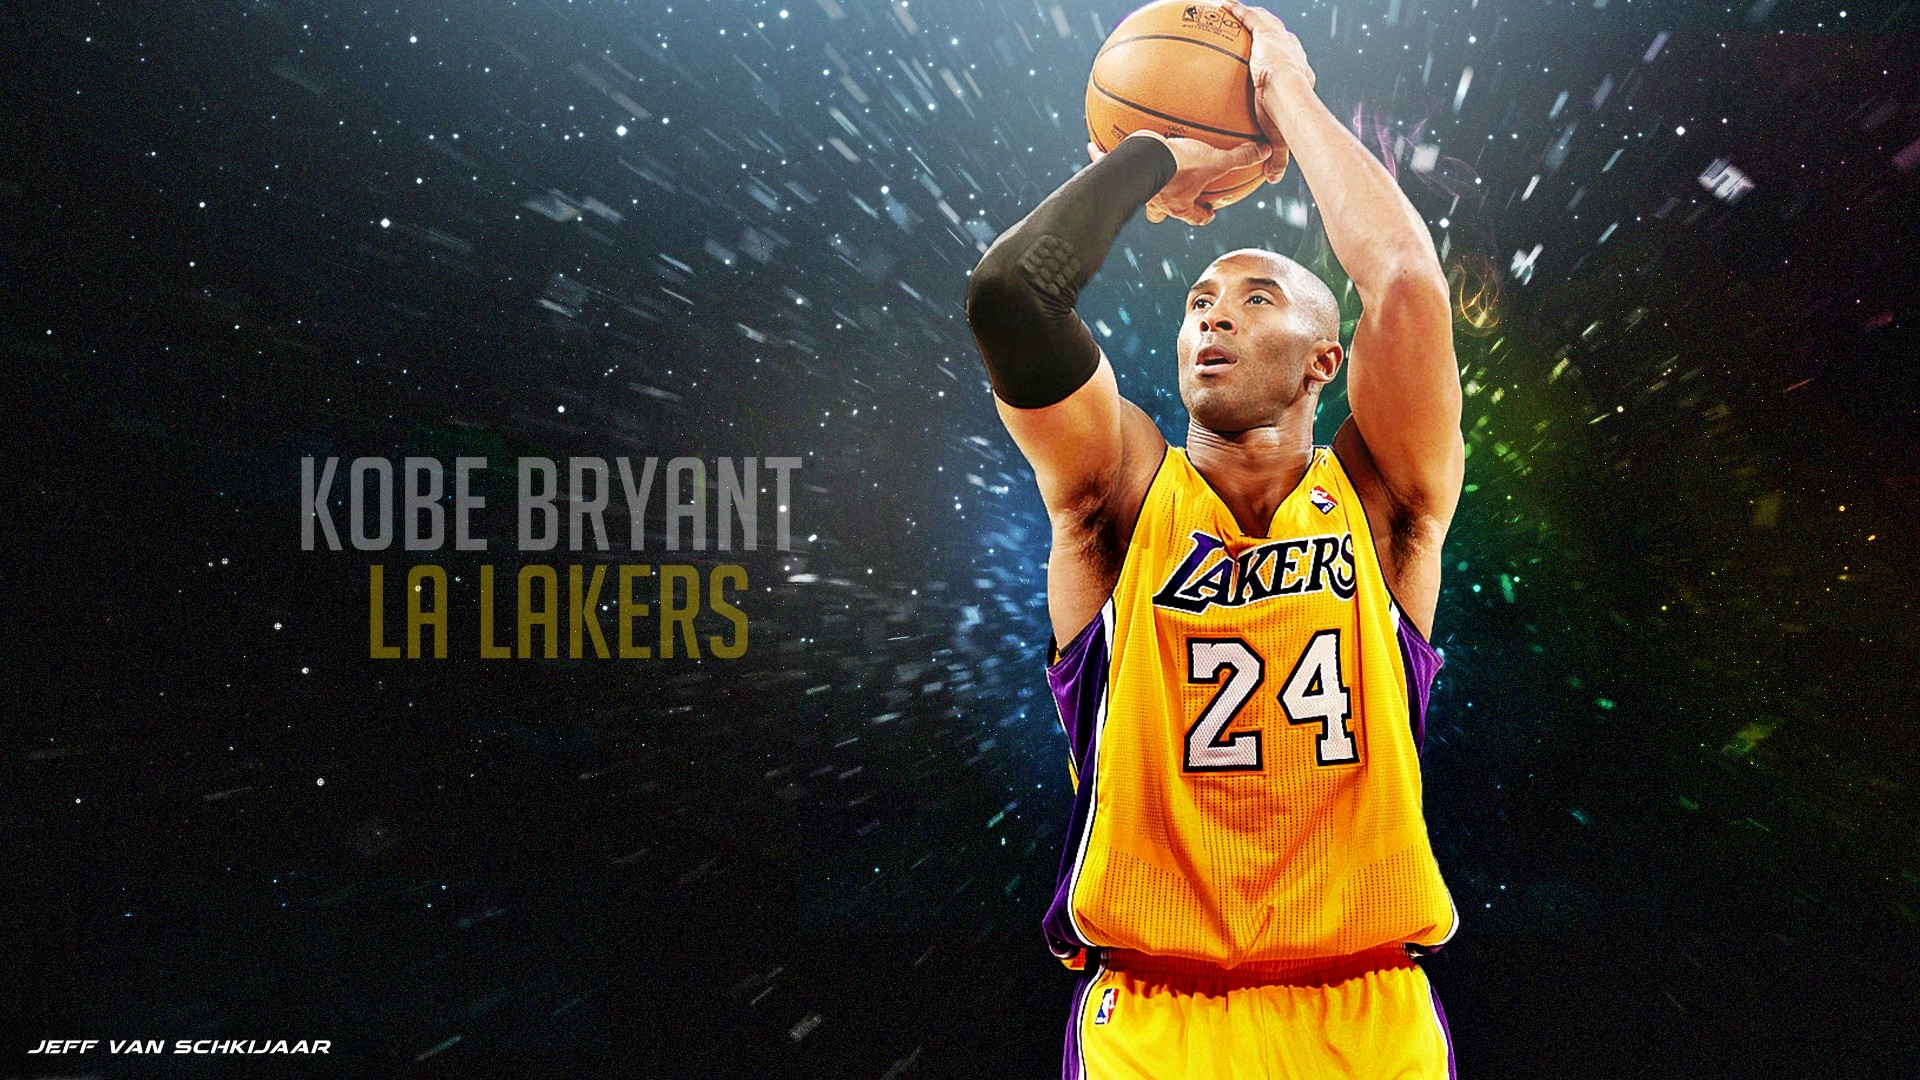 Kobe Bryant Wallpapers 77 Images